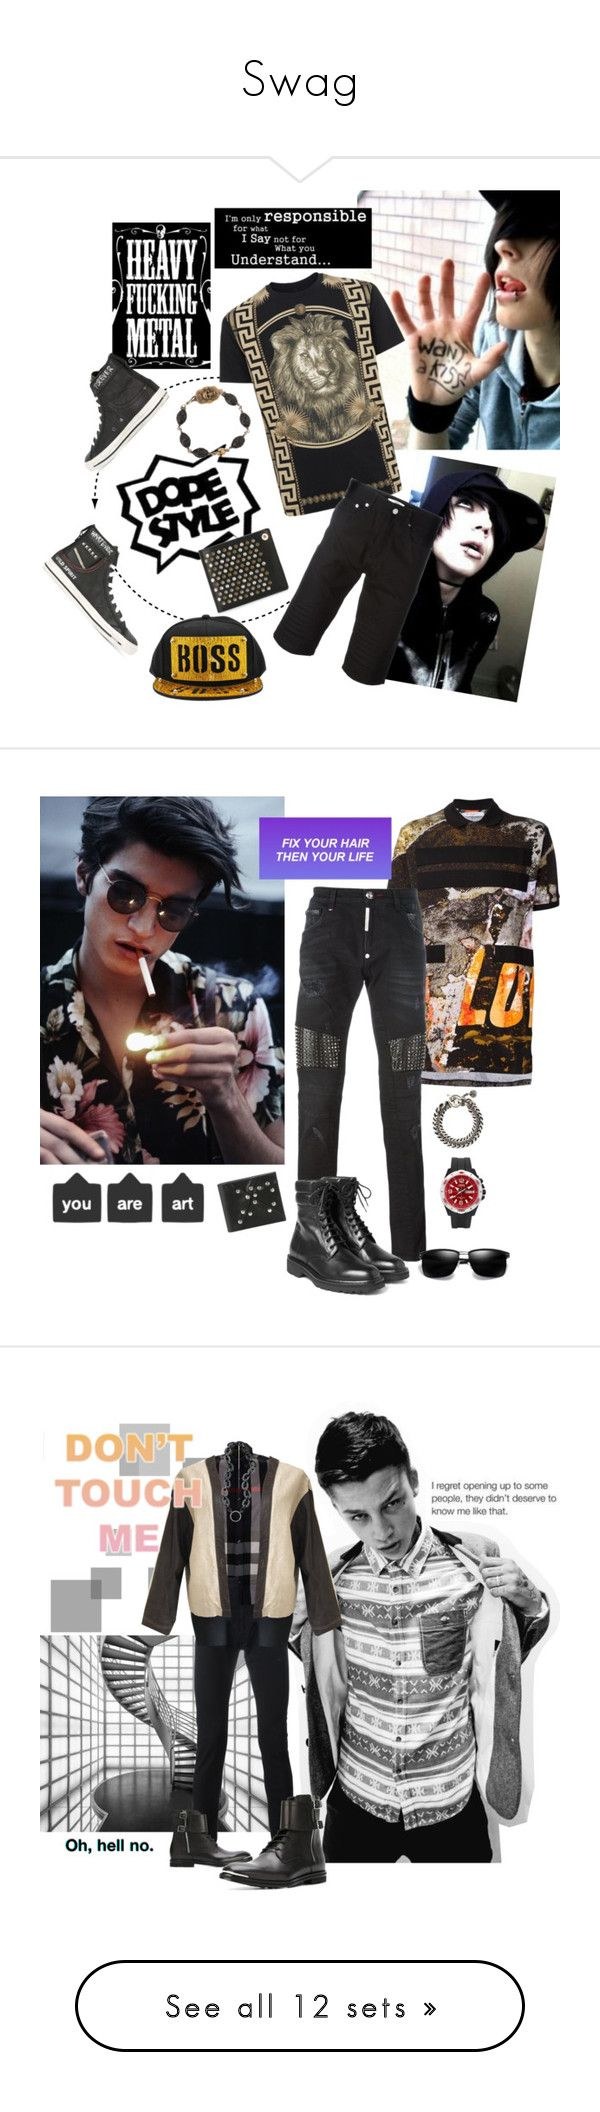 """""""Swag"""" by thedarkenedprince ❤ liked on Polyvore featuring Hai, Versus, Givenchy, Diesel, Roman Paul, men's fashion, menswear, Philipp Plein, Maison Margiela and Ann Demeulemeester"""